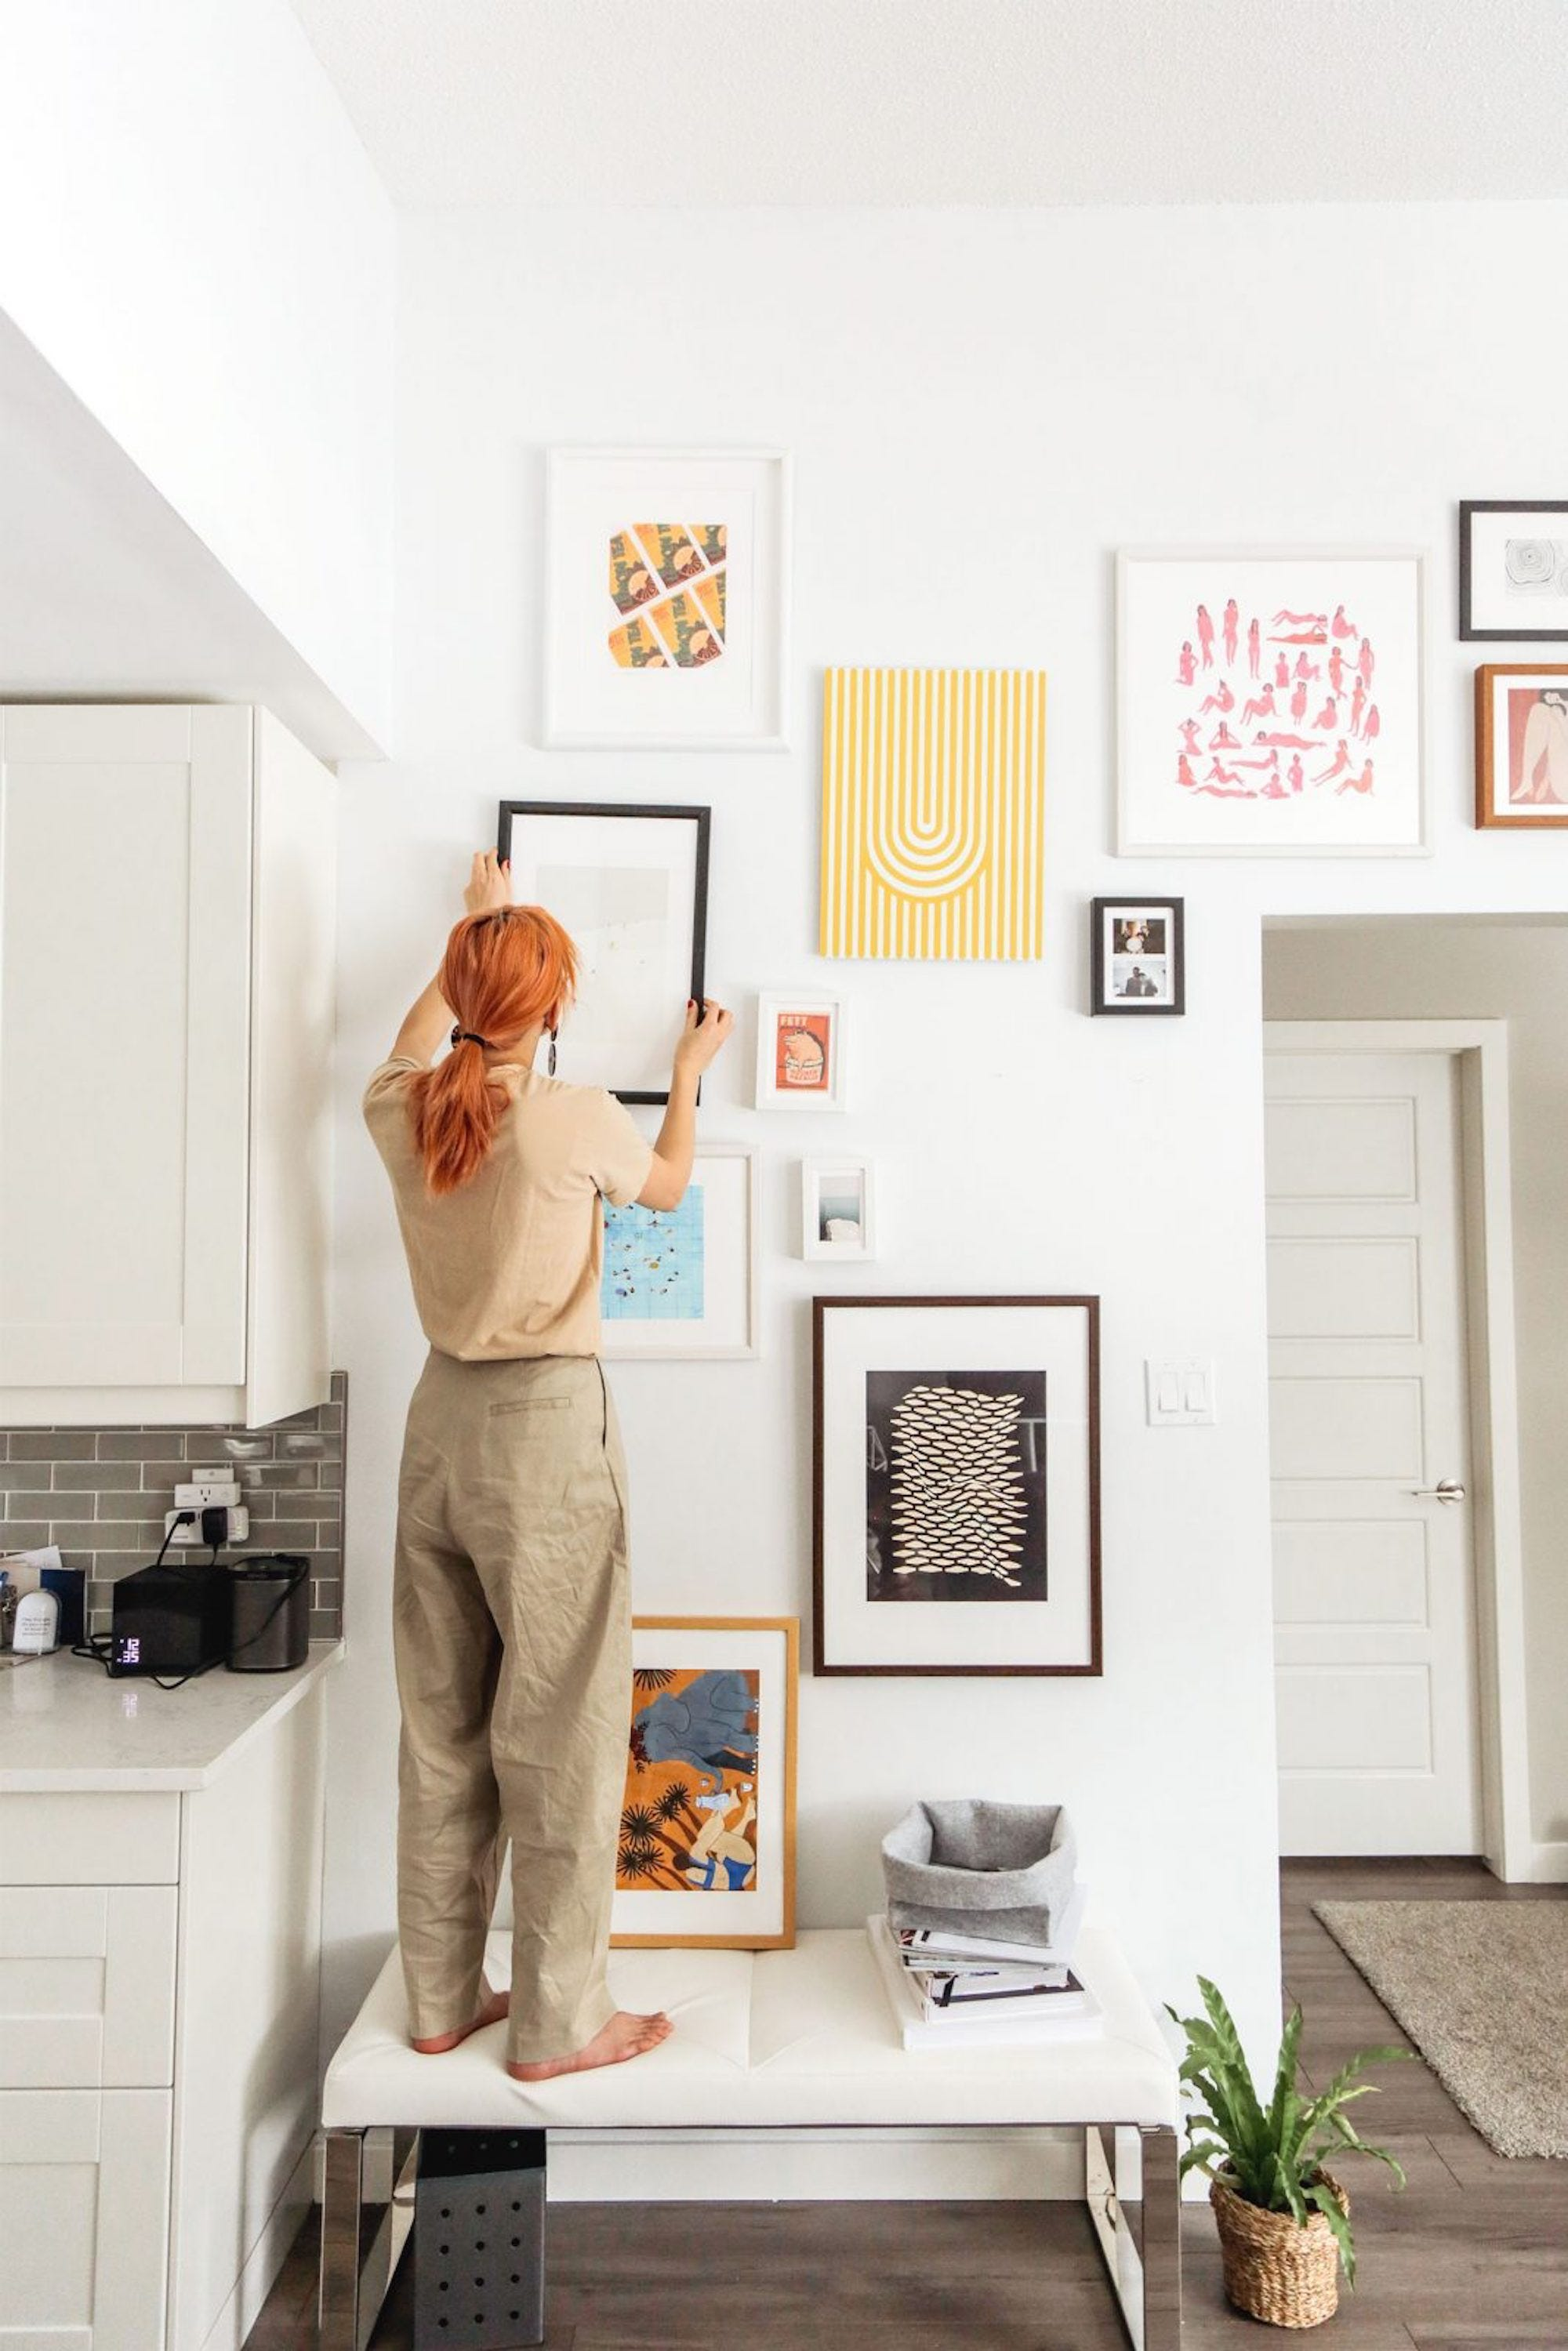 An Expert Guide To Buying & Styling Affordable Art For Your Home